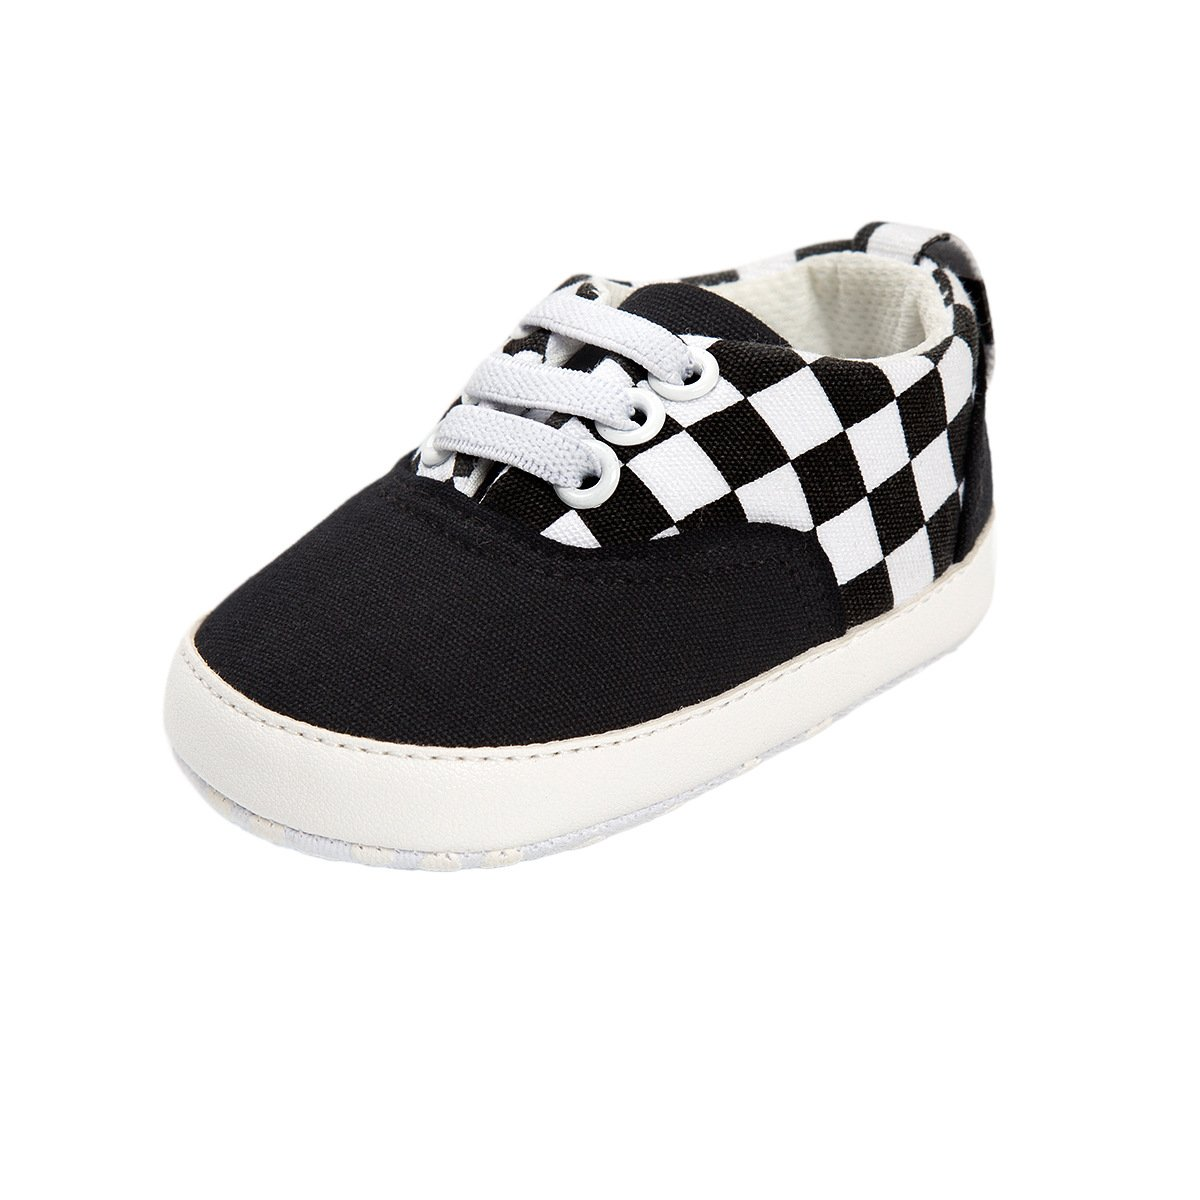 BENHERO Baby Boys Girls Canvas Toddler Sneaker Anti-Slip First Walkers Candy Shoes 0-24 Months 12 Colors (12cm(6-12months), A-Black)